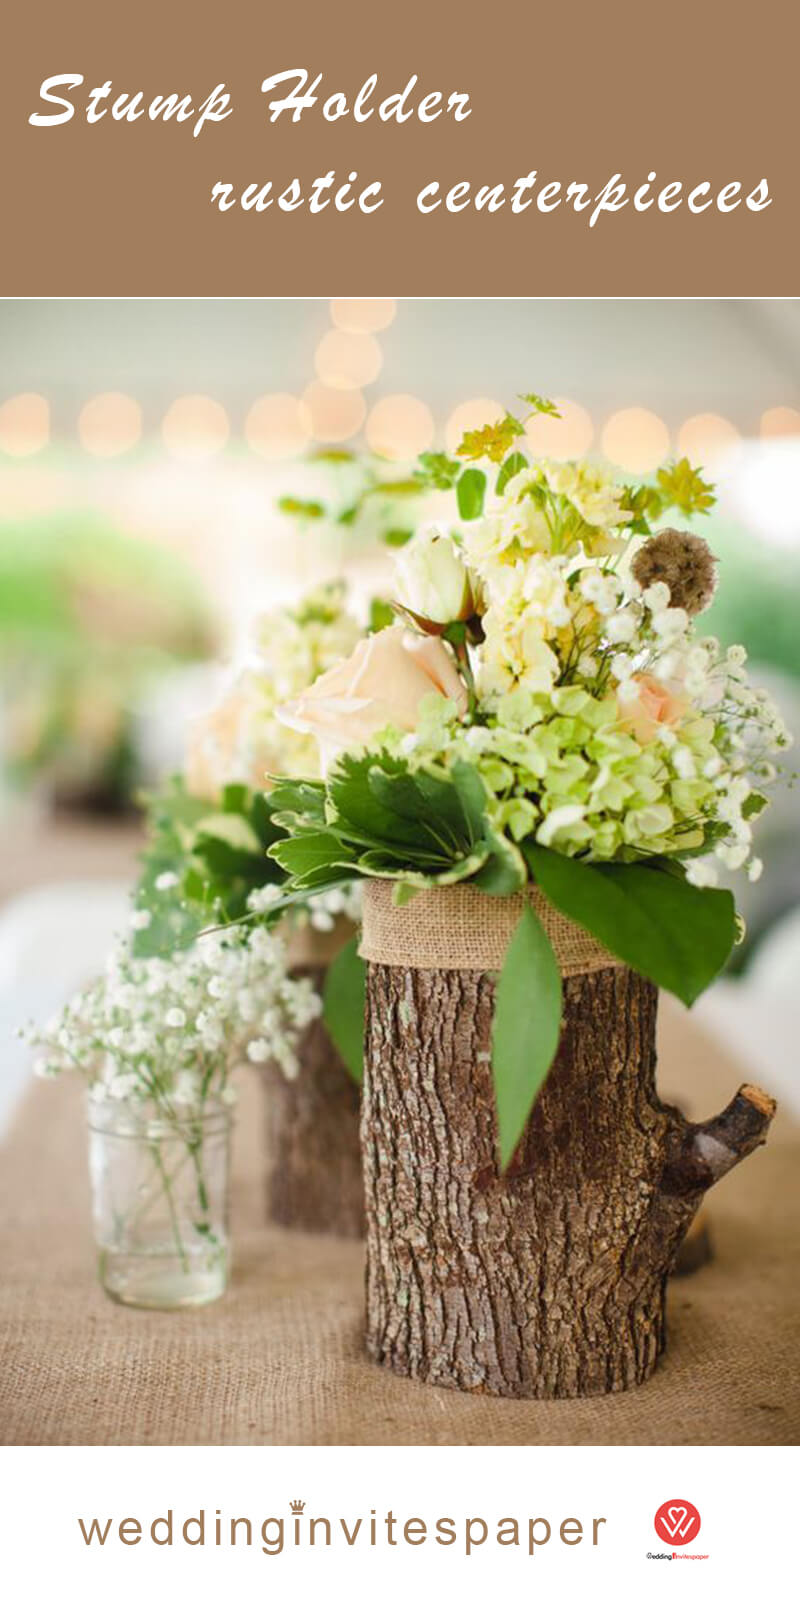 19 Stump Holder rustic centerpieces.jpg